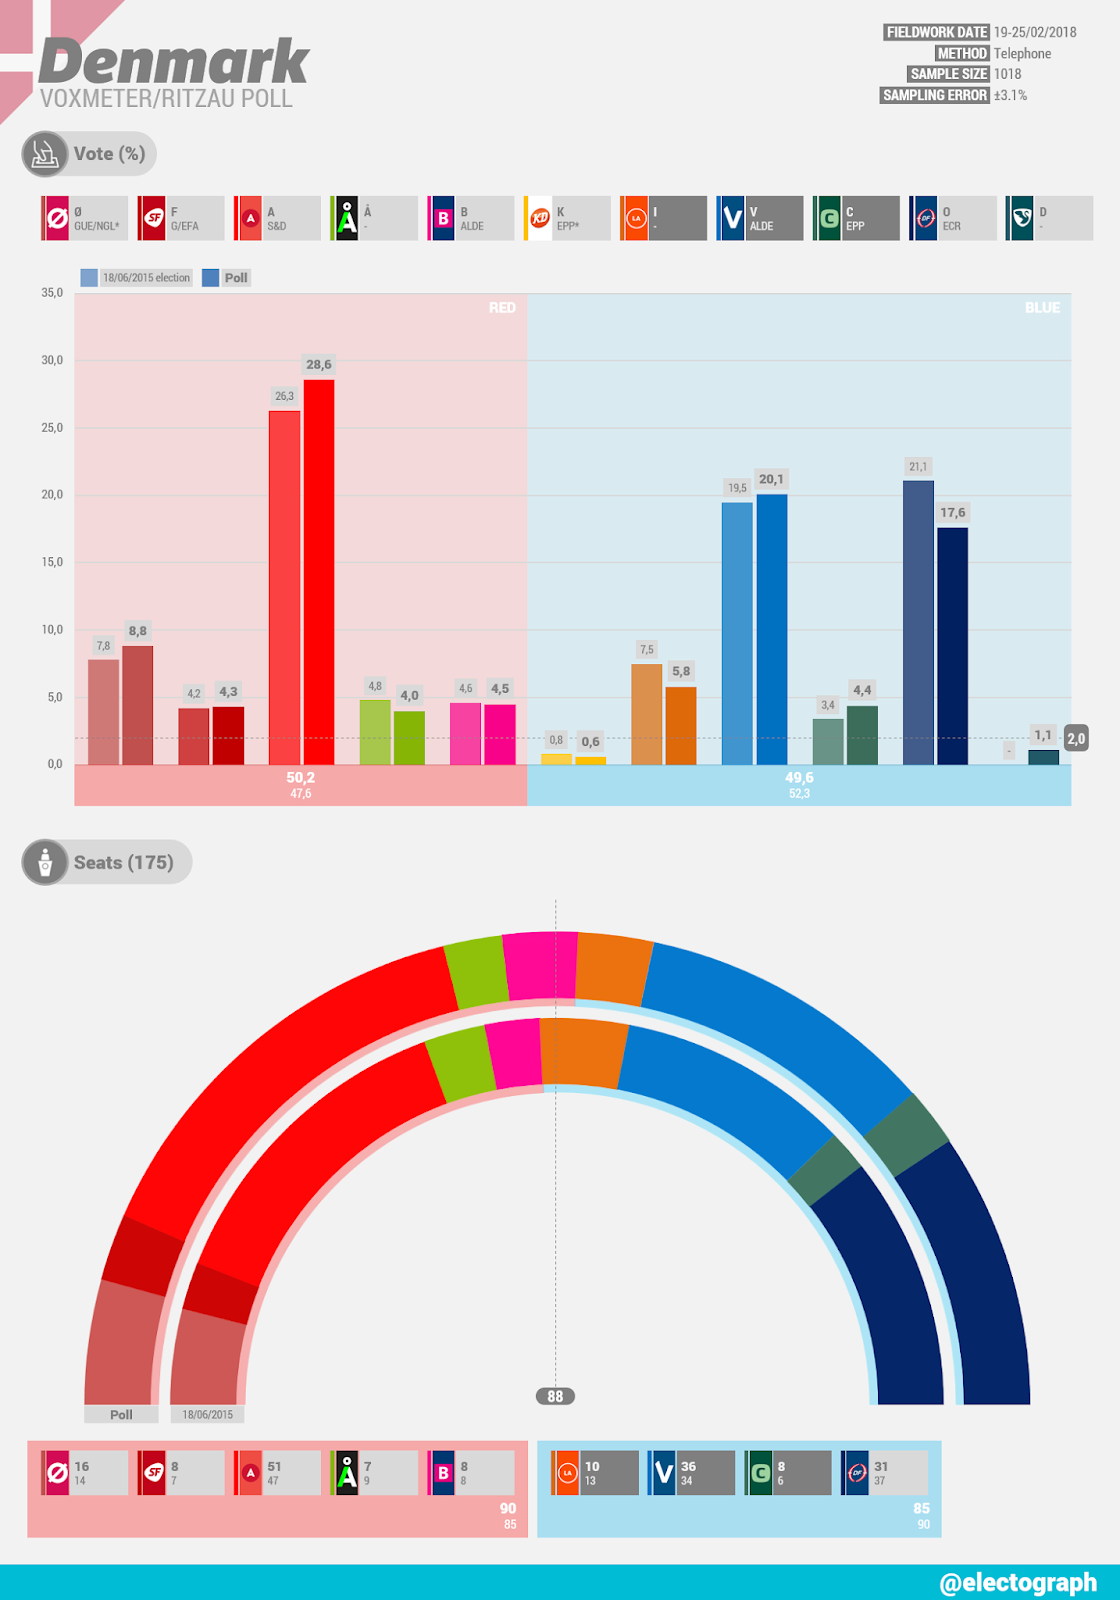 DENMARK Voxmeter poll for Ritzau, February 2018